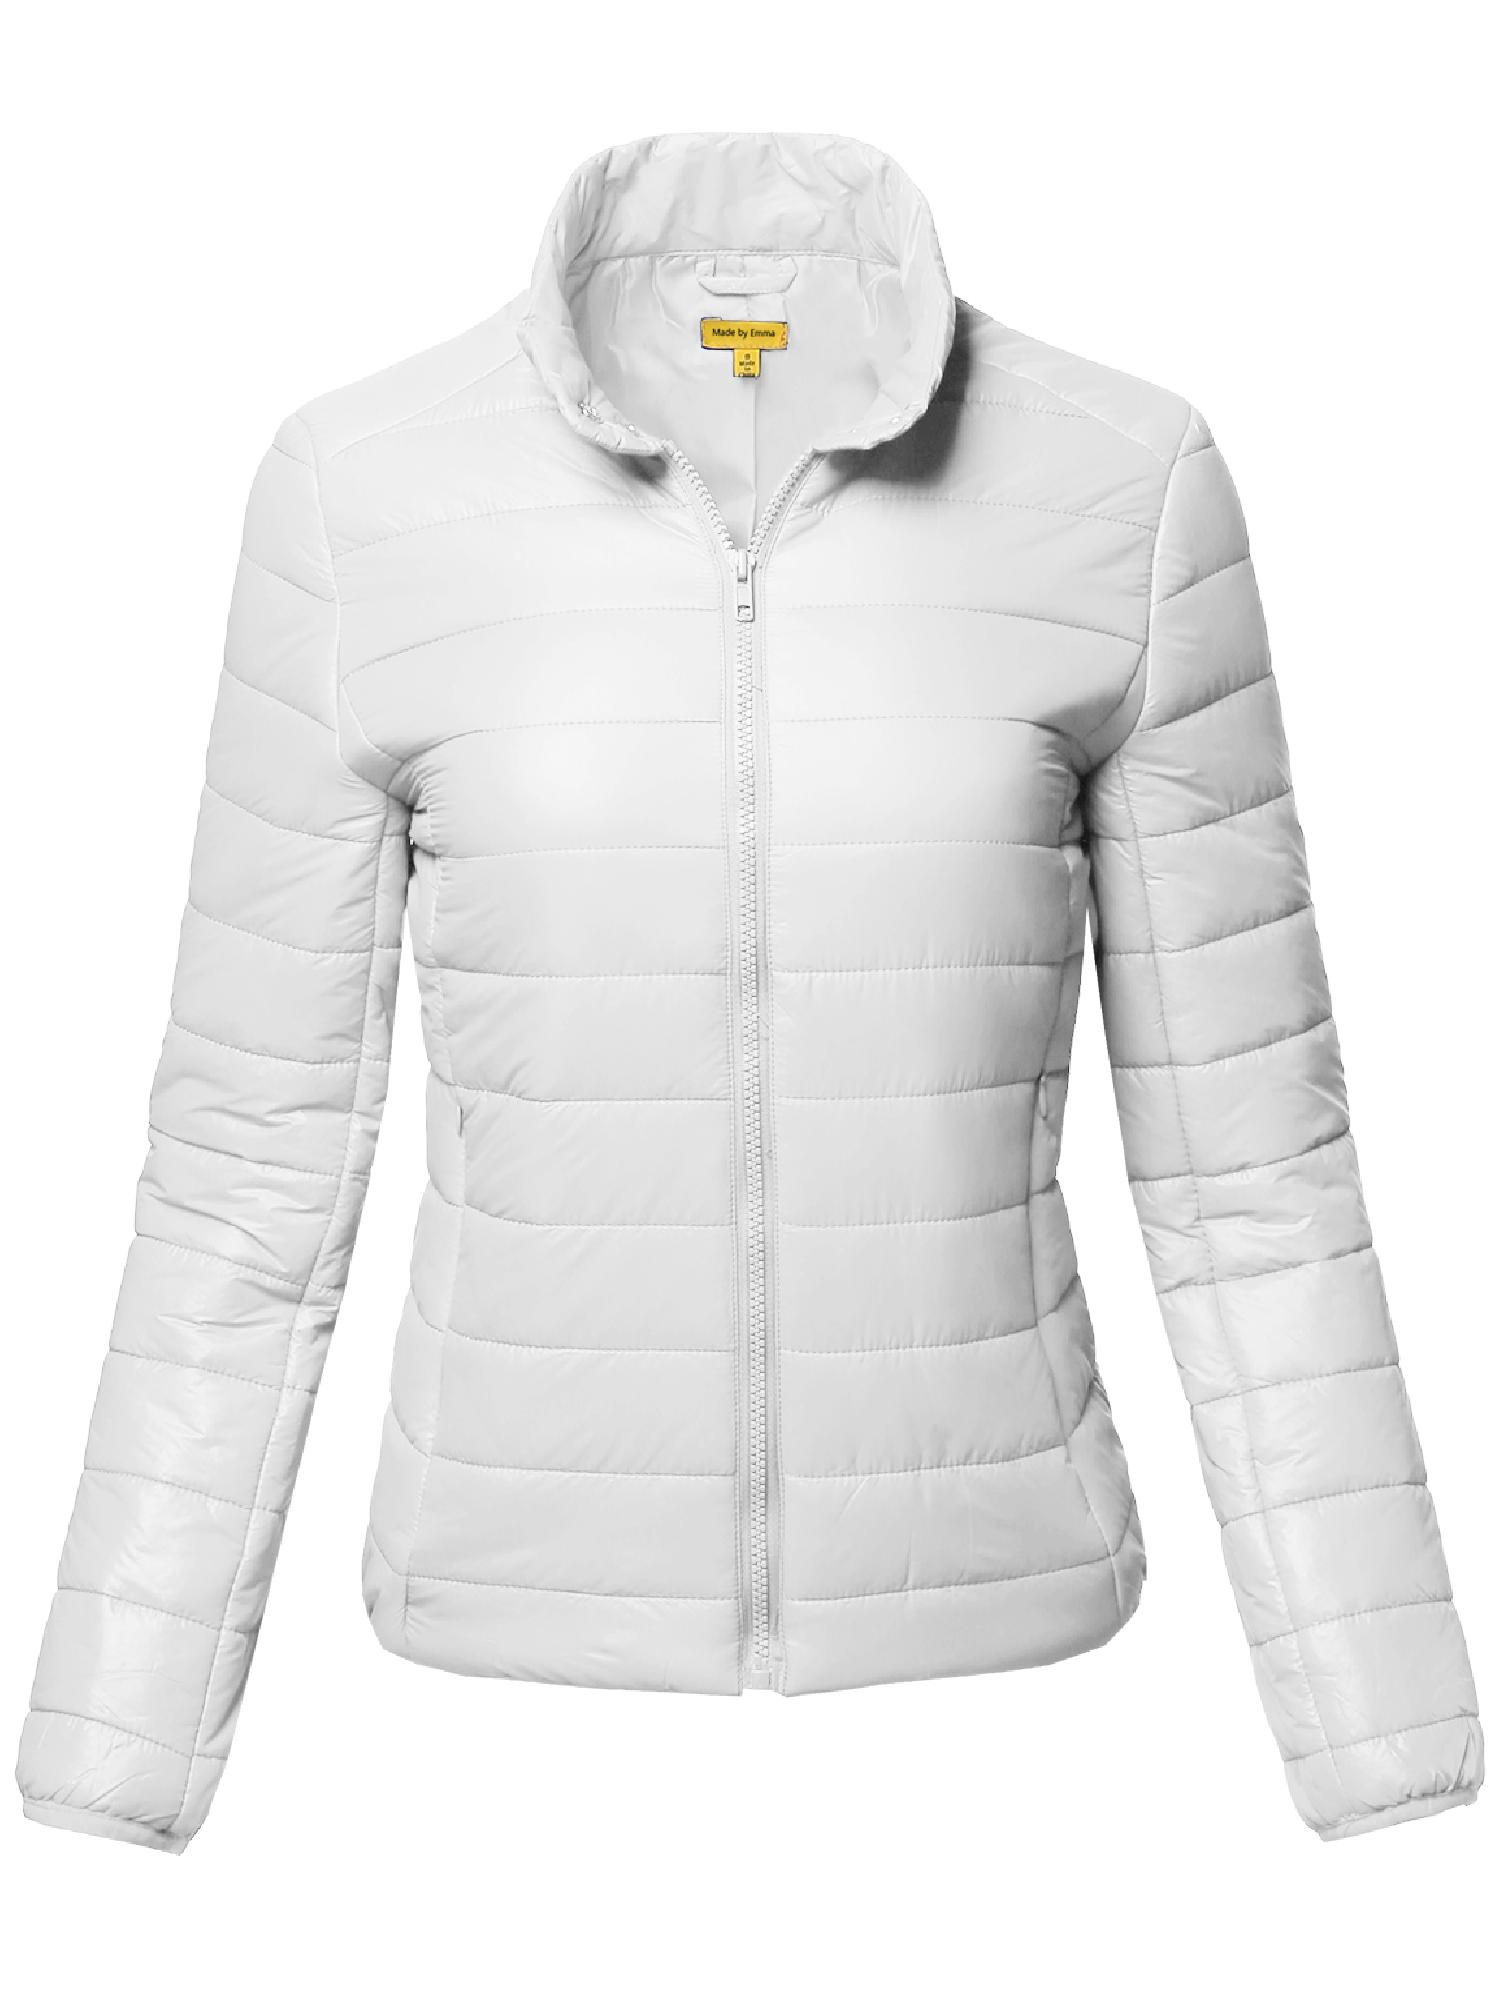 FashionOutfit Women/'s Solid Basic Long Sleeves Quilted Lightly Padded Jacket